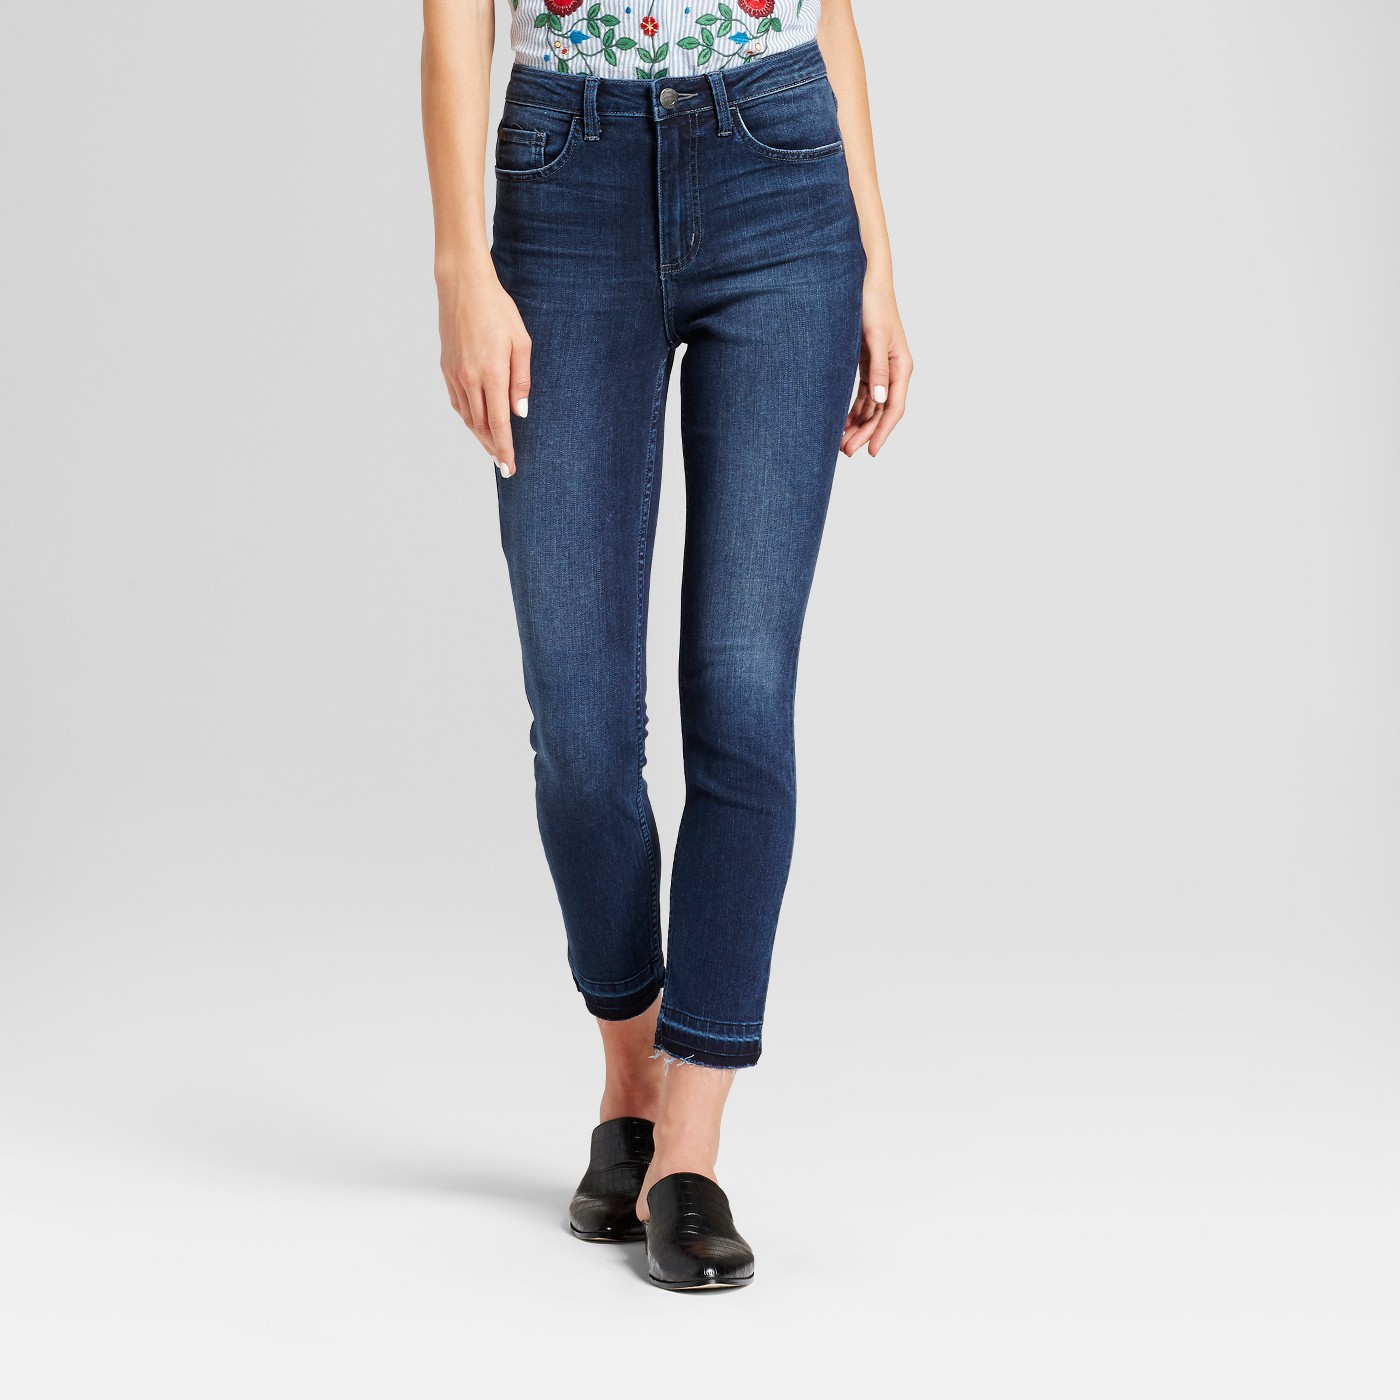 Women's Modern Fit High Rise Released Hem Skinny Jeans - Crafted by Lee® - image 1 of 5